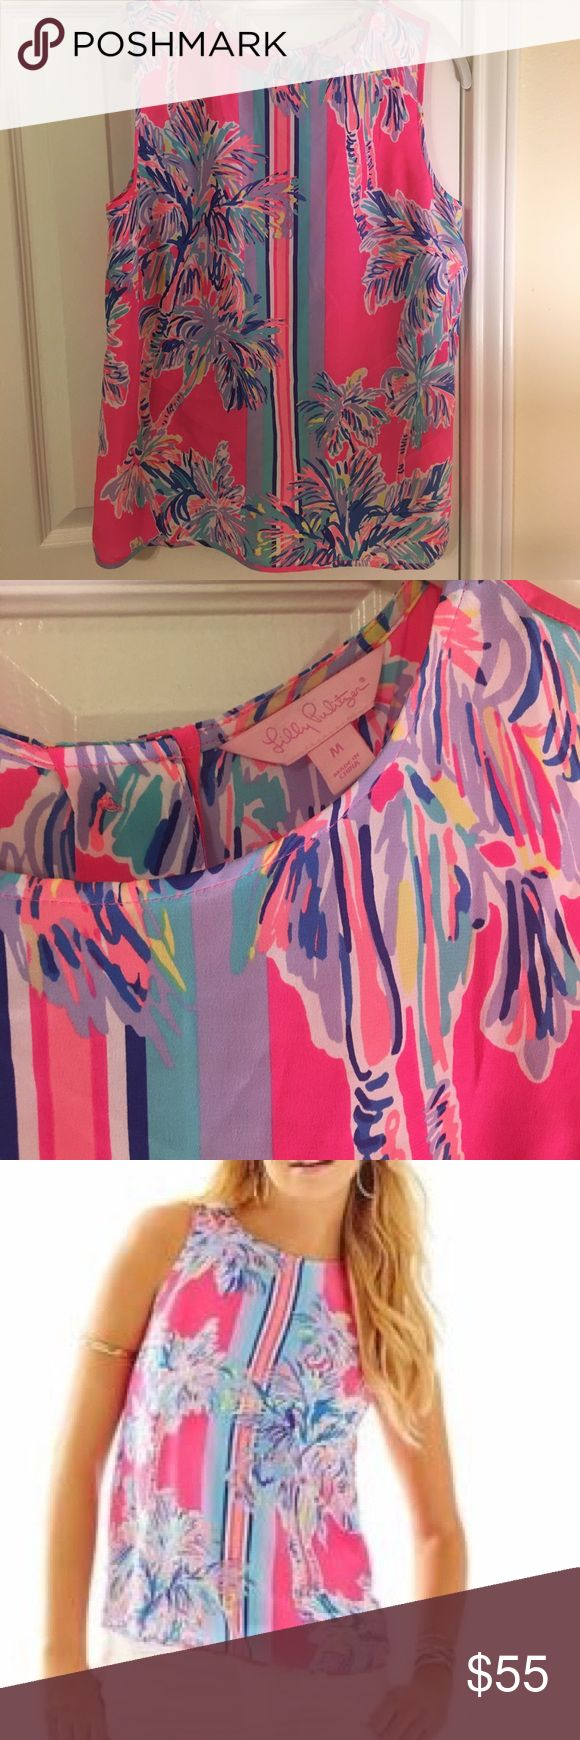 NWOT Lilly Pulitzer Iona Sleeveless Silk Shell Top NWOT Lilly Pulitzer Iona Sleeveless Silk shell top, Flamingo Pink, Size M. Never been worn! Great condition and amazing bright colors. Lilly Pulitzer Tops